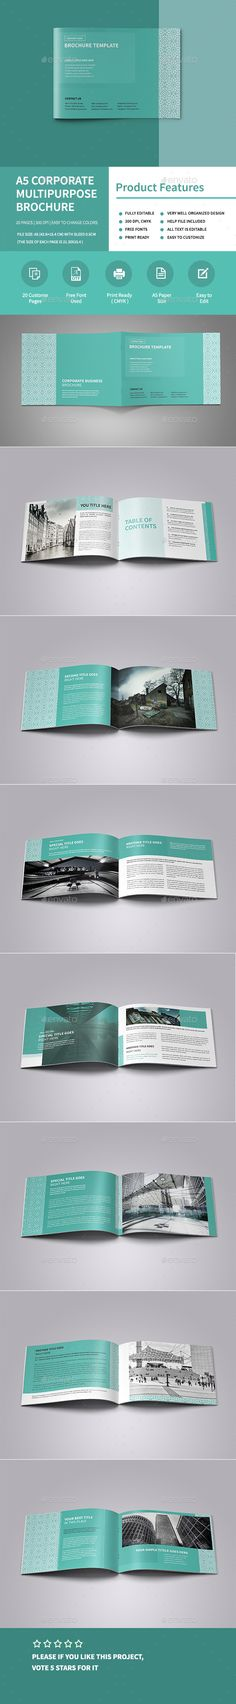 Landscape Architecture Brochure Brochures, Brochure template and - architecture brochure template